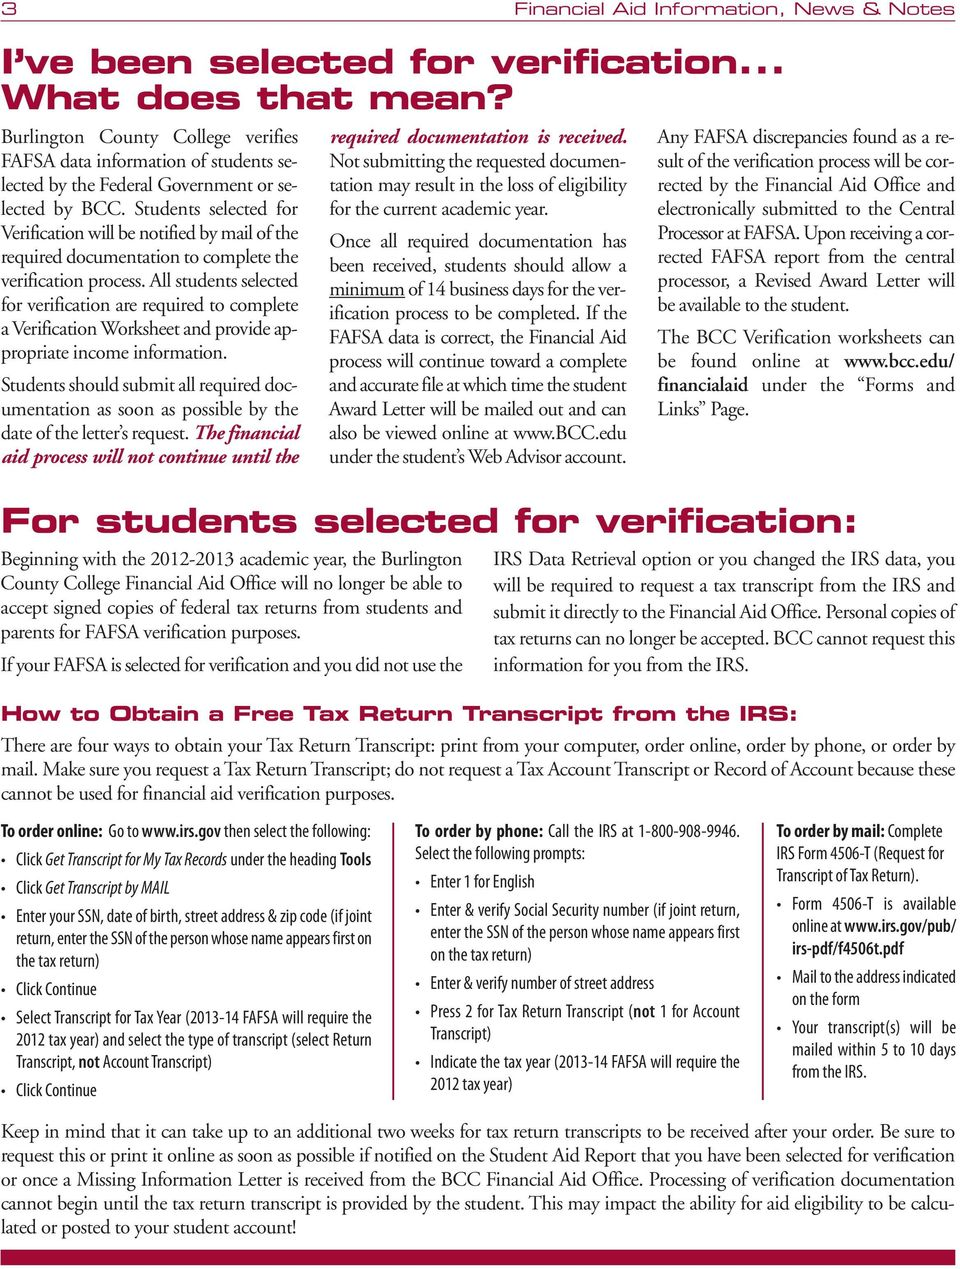 Students selected for Verification will be notified by mail of the required documentation to complete the verification process.